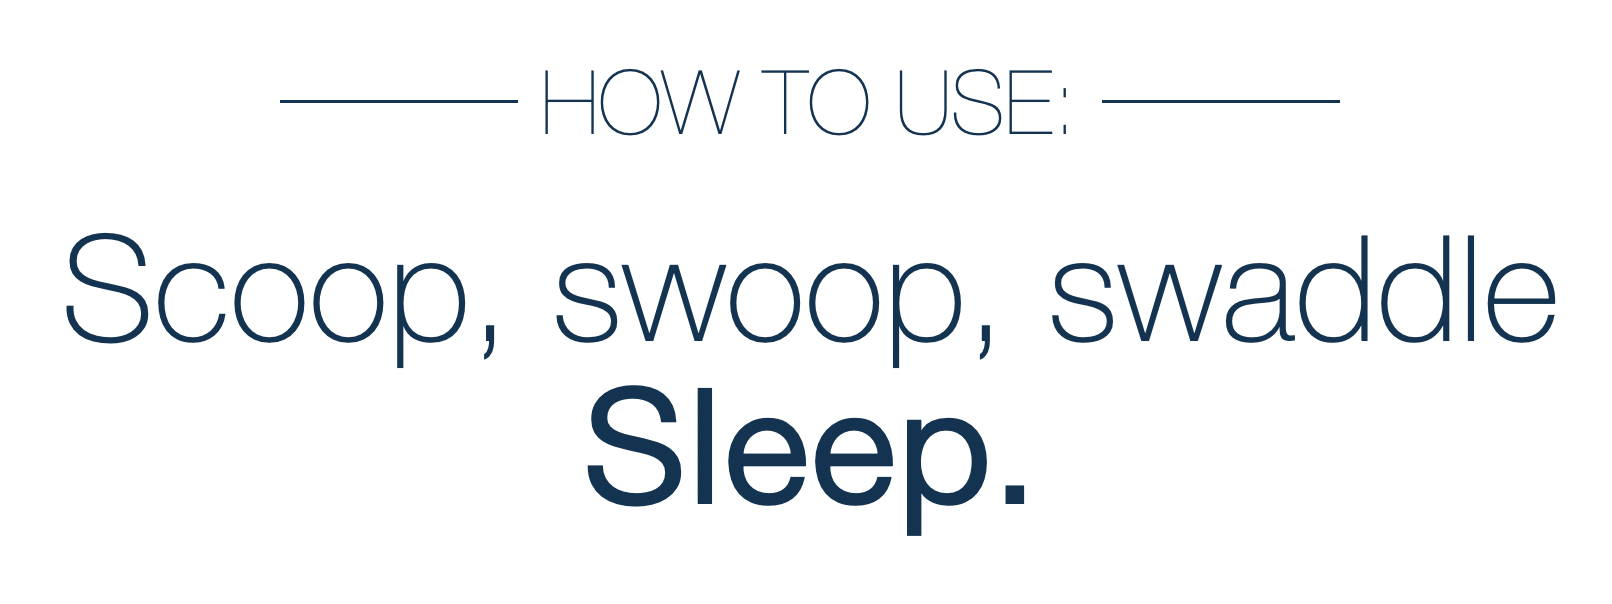 Picture that reads: How to Use: Scoop, Swoop, Swaddle Sleep